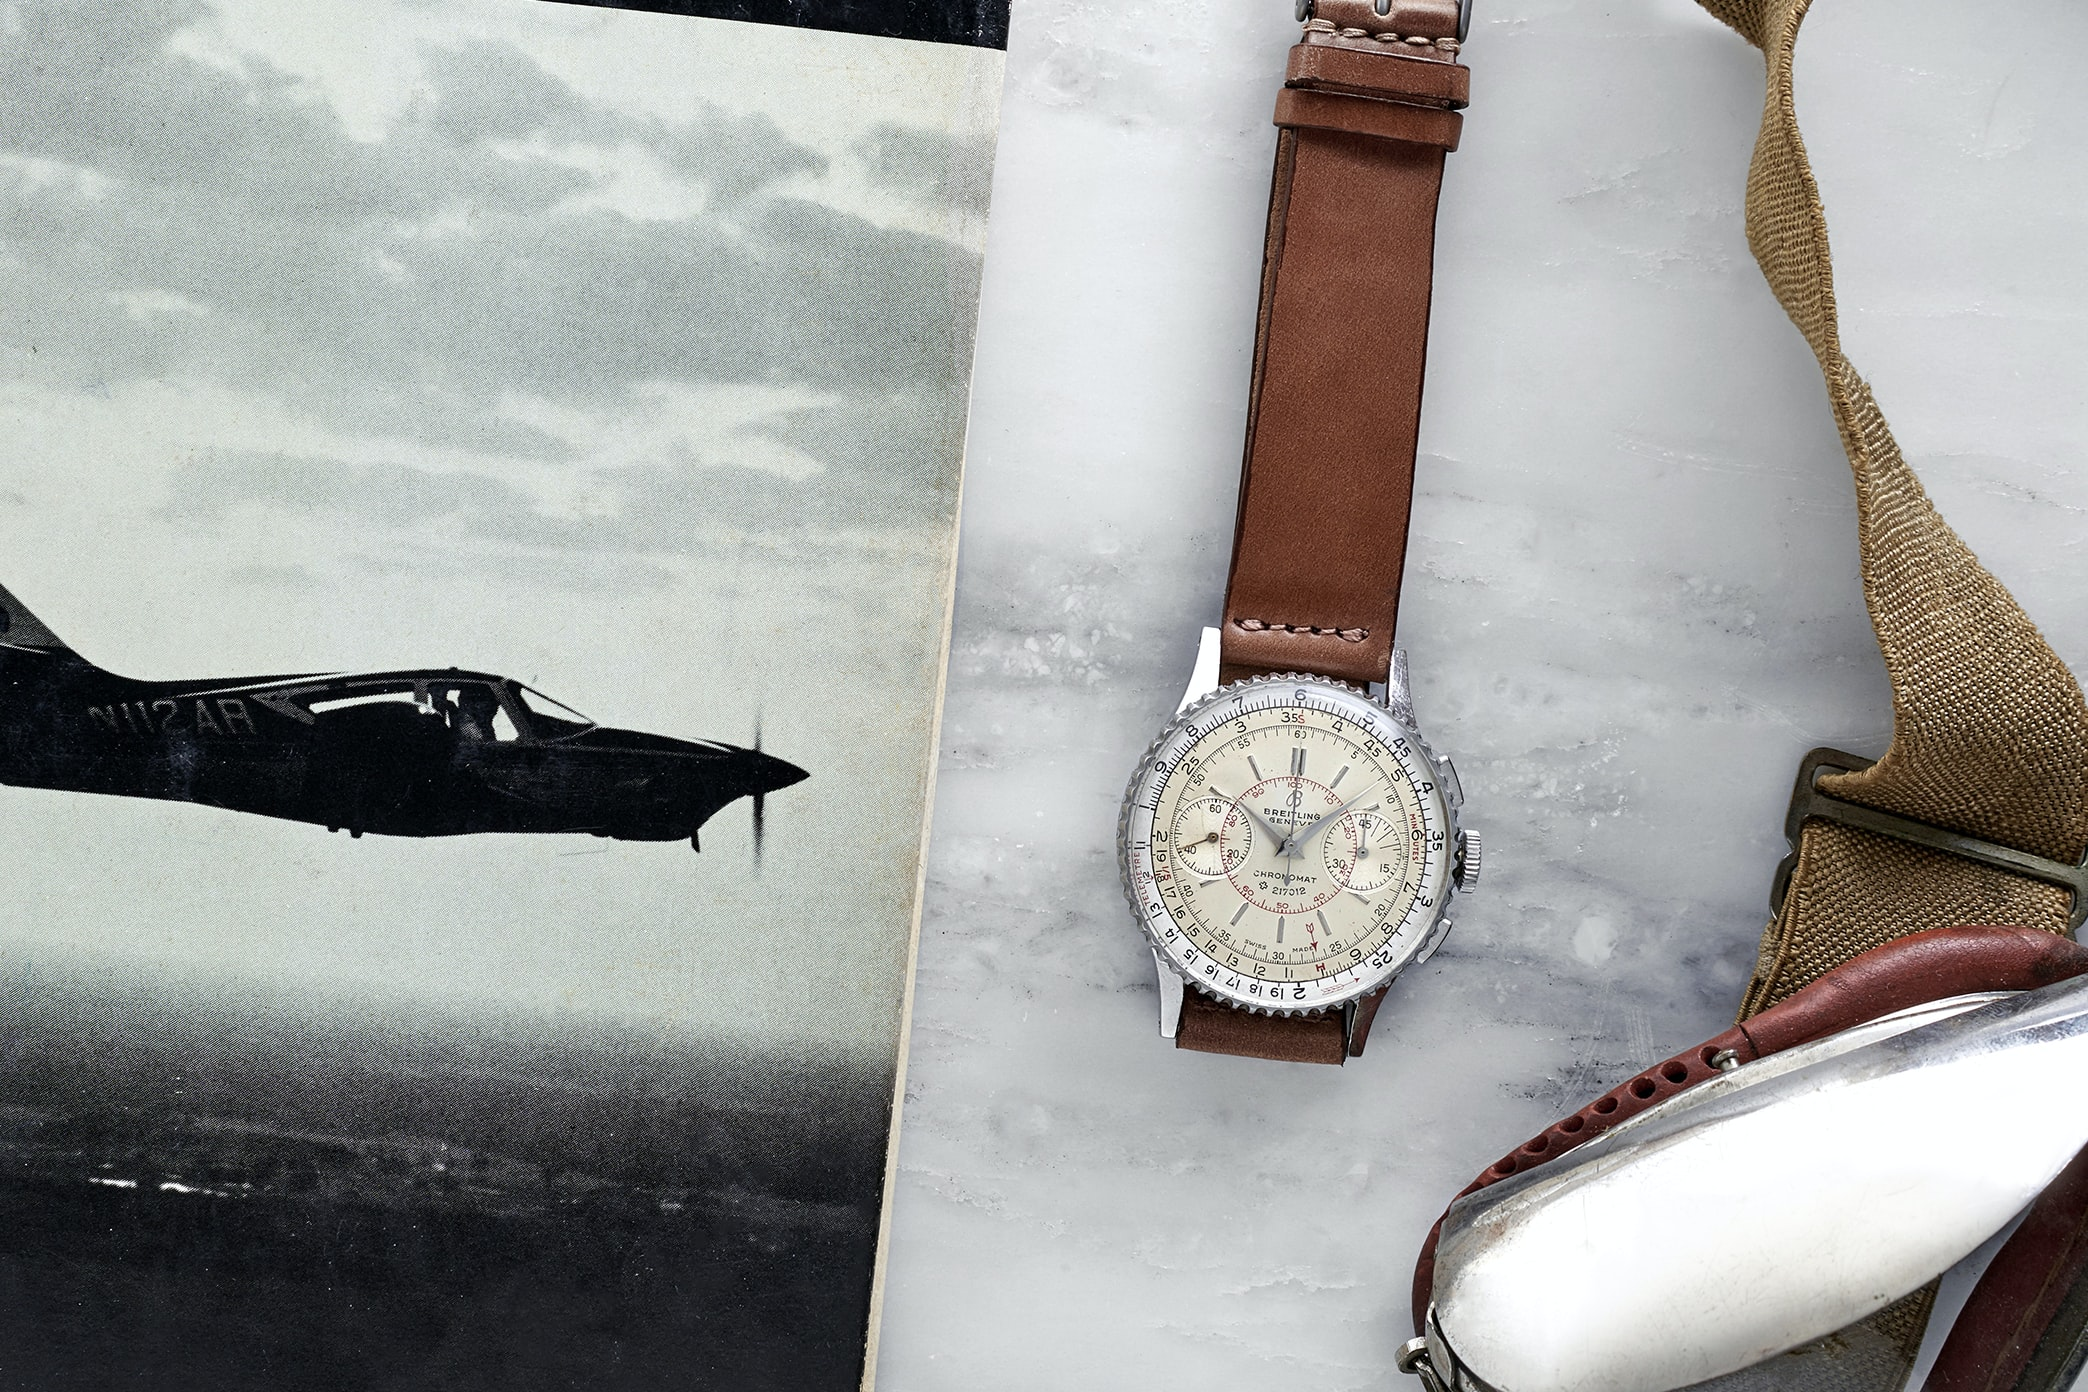 In The Shop: A 1940s Breitling Chronomat Reference 769, A 1960s Cornavin Diver, And A 1972 Rolex Daytona Reference 6263 In The Shop: A 1940s Breitling Chronomat Reference 769, A 1960s Cornavin Diver, And A 1972 Rolex Daytona Reference 6263 465 BreitlingChronomat LANDSCAPE